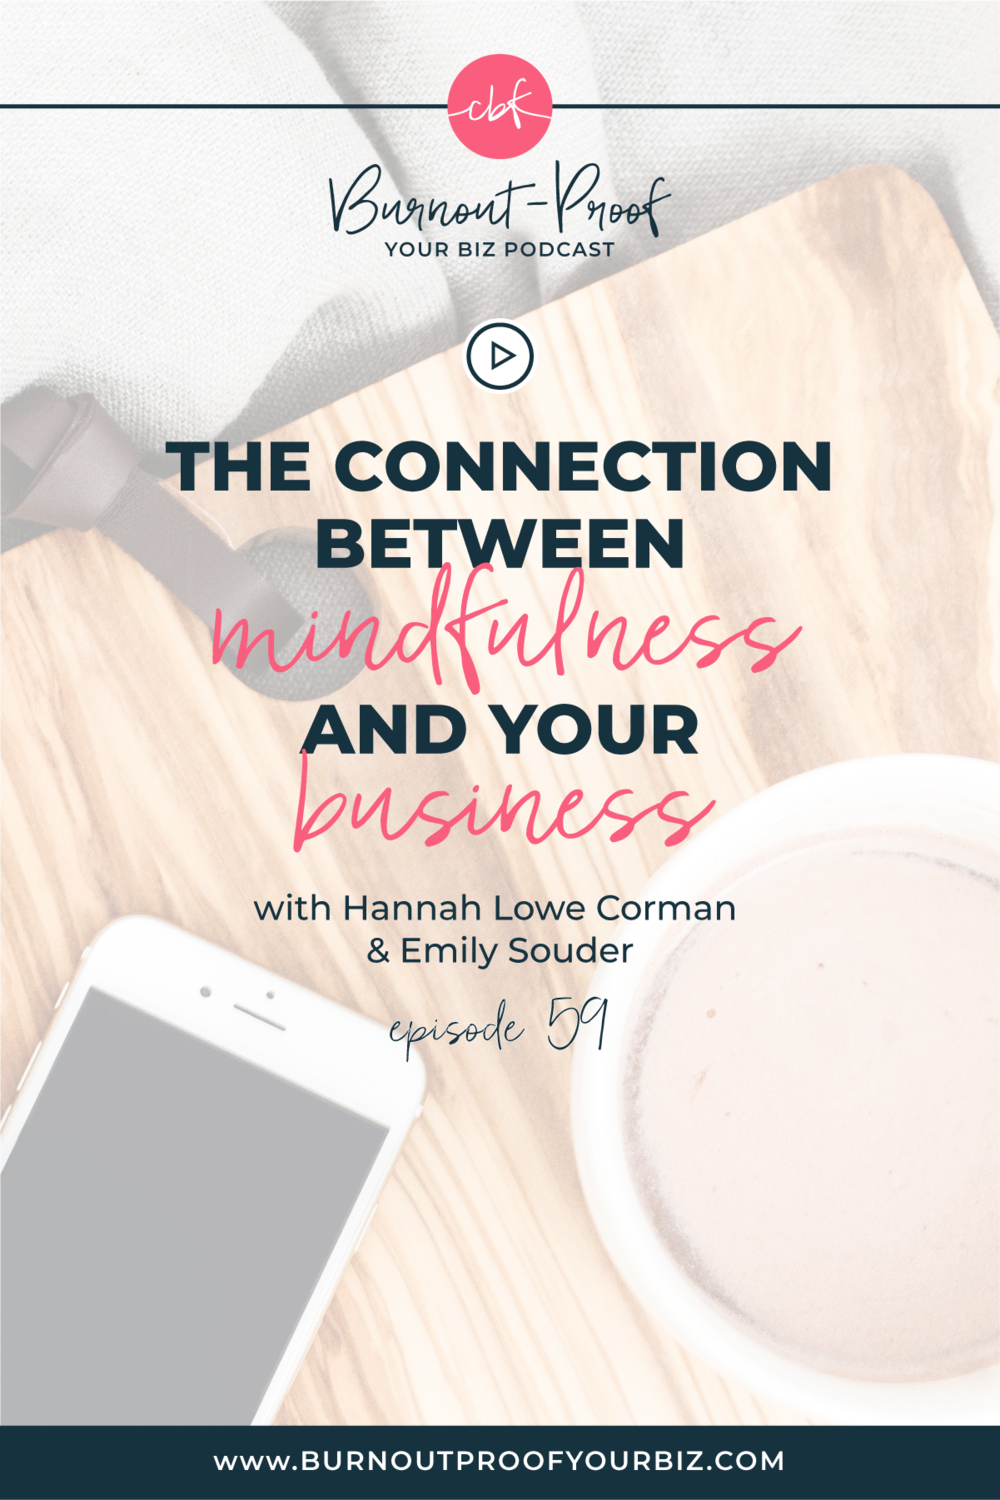 THE CONNECTION BETWEEN MINDFULNESS & YOUR BUSINESS on the Burnout-Proof Your Biz Podcast with Chelsea B Foster | Episode 059 - Living and Running a Business Mindfully with Hannah Lowe Corman and Emily Souder | Learn how to run your biz and live your dream life on your own terms without the fear of burnout | Learn how to run your biz and live your dream life on your own terms without the fear of burnout.  |||  LIVING MINDFULLY | SELF-LOVE FOR ENTREPRENEURS | MINDFUL MEDITATIONS FOR MOMS | REIKI HEALING | MUTLI-PASSIONATE CREATIVES | BUSINESS BESTIES | MEDITATIONS FOR ENTREPRENEURS | TRUST YOUR GUT